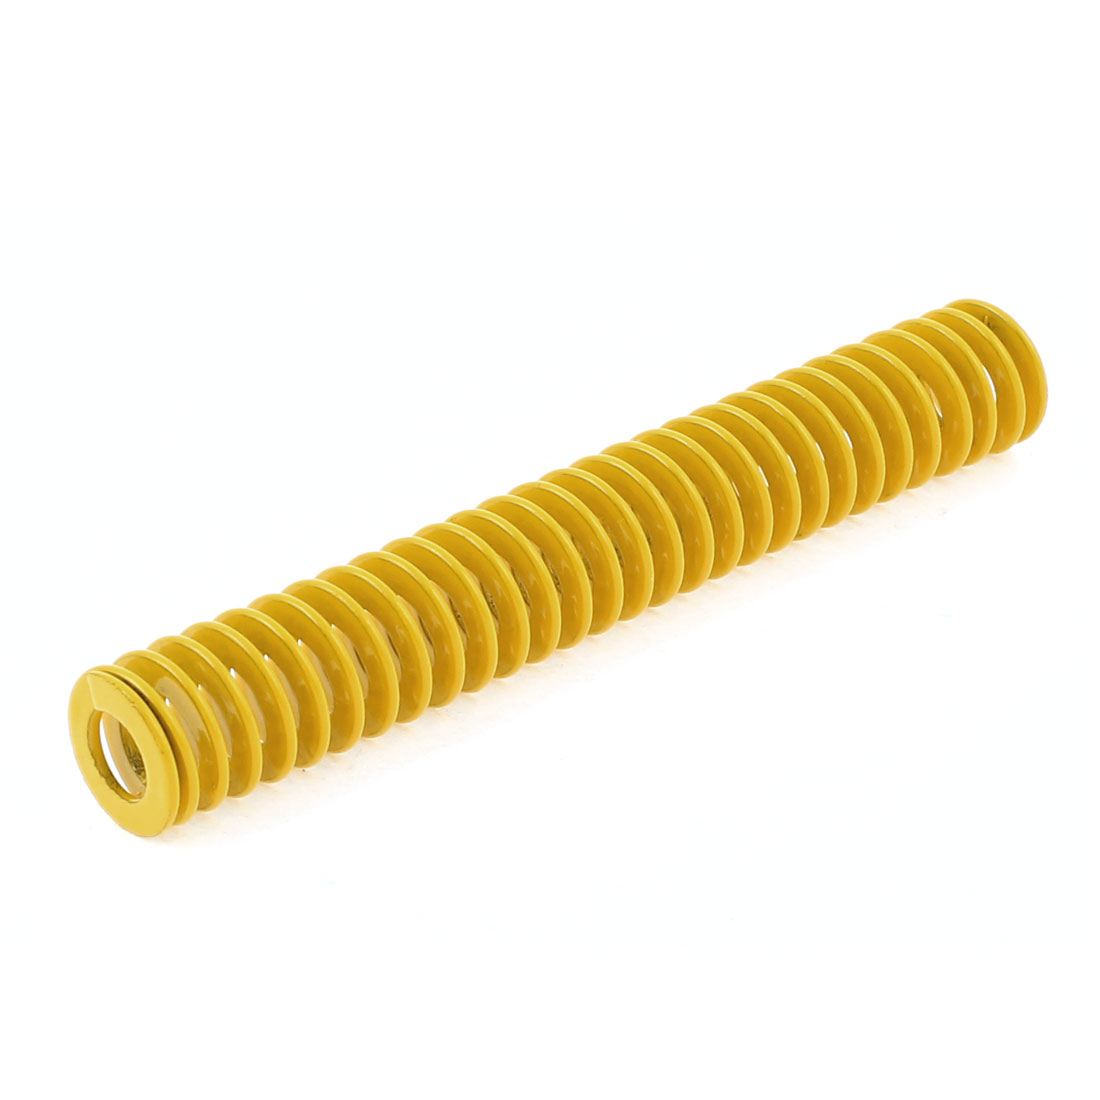 Yellow Chromium Alloy Steel Tubular Section Mould Die Spring 12x6x80mm